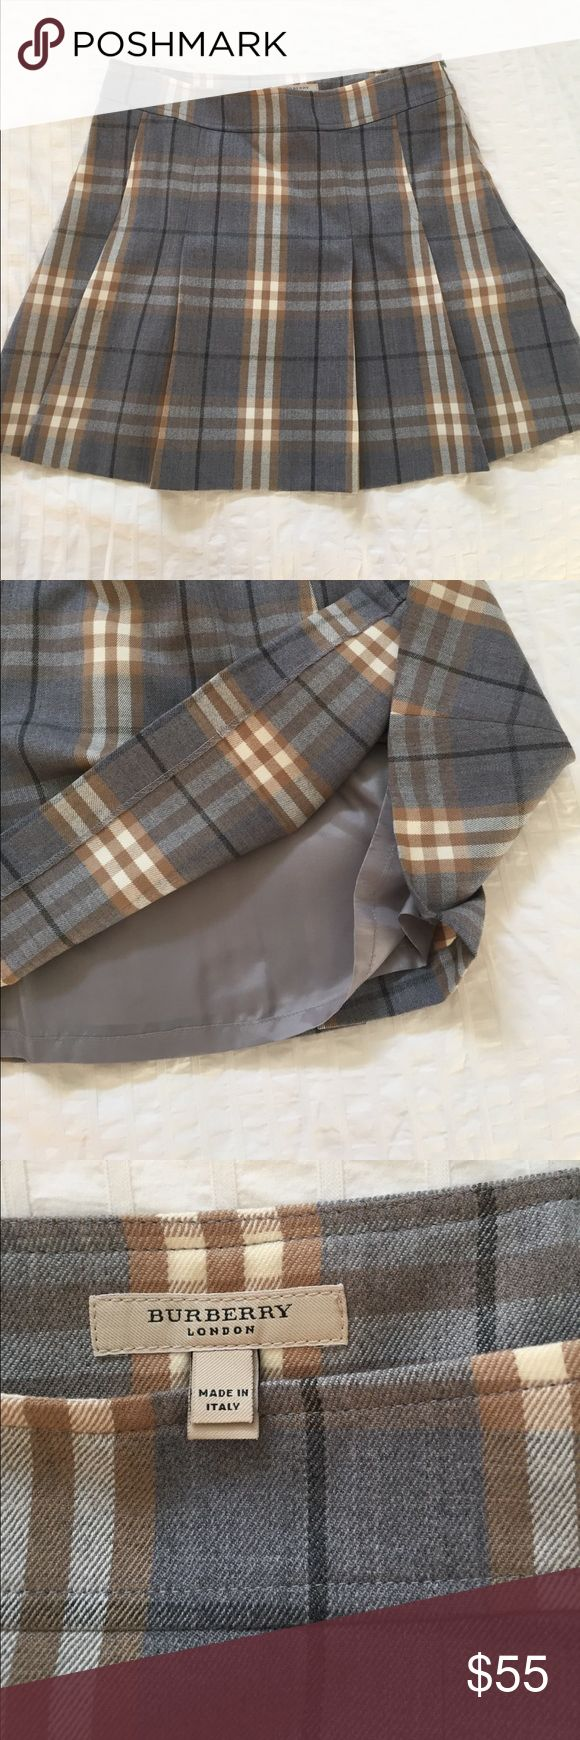 Burberry pleated 100% wool skirt Signature Burberry plaid wool pleated skirt, gently used, small coffee spot that could be removed with some TLC (not noticeable currently, with the pattern you have to look very closely to see it).  Would look adorable with black tights in winter! Make me an offer! Burberry Skirts Mini